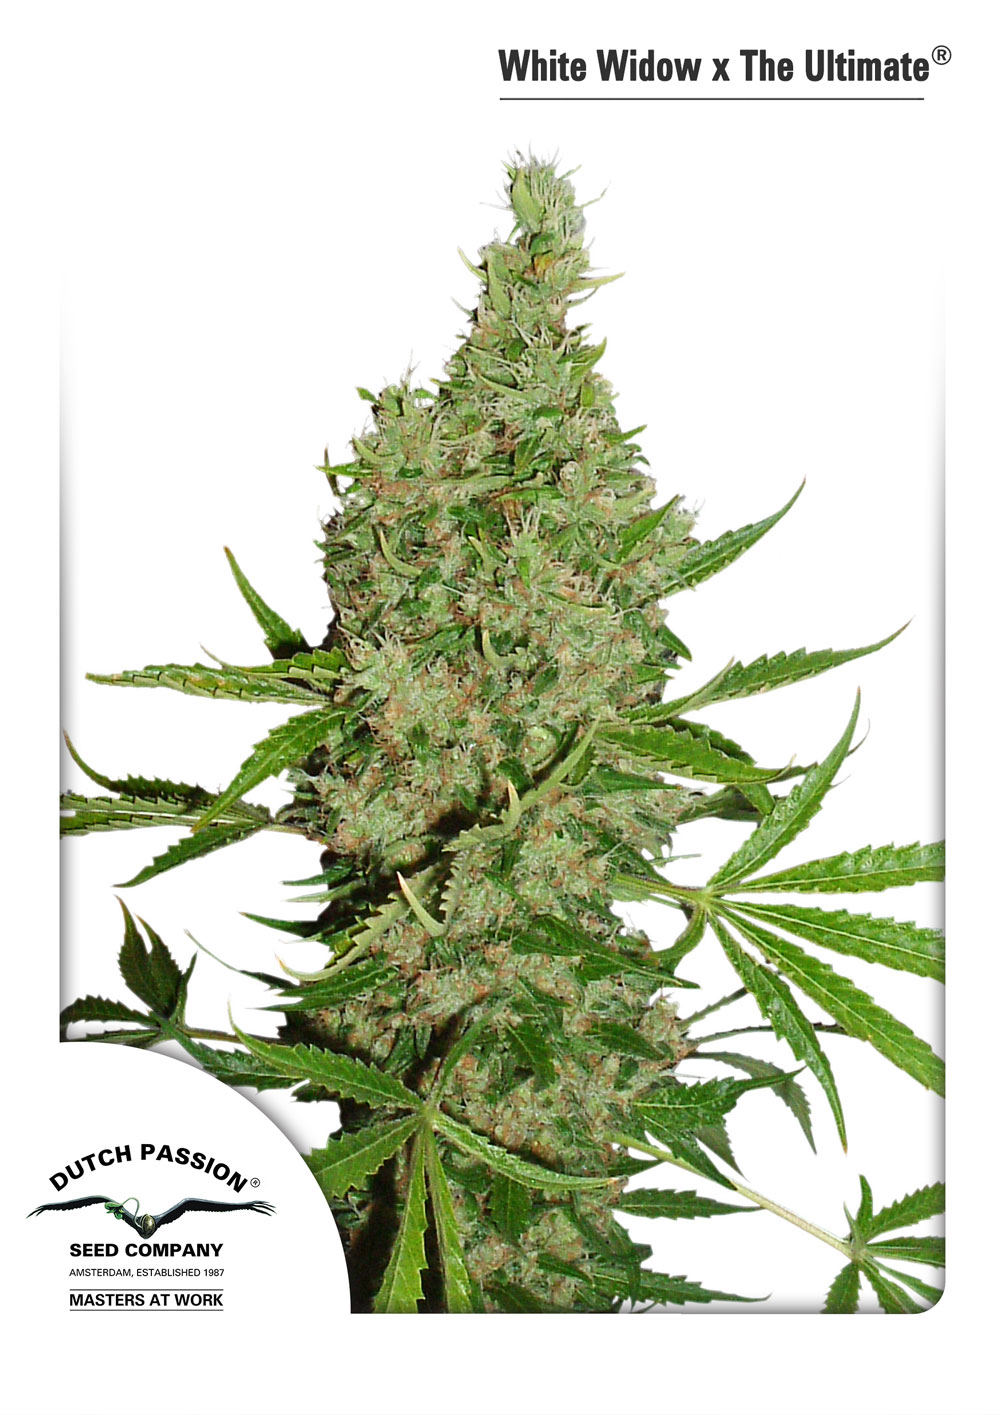 Recenzja Odmiany White Widow X The Ultimate® od Dutch Passion, Dutch Seeds